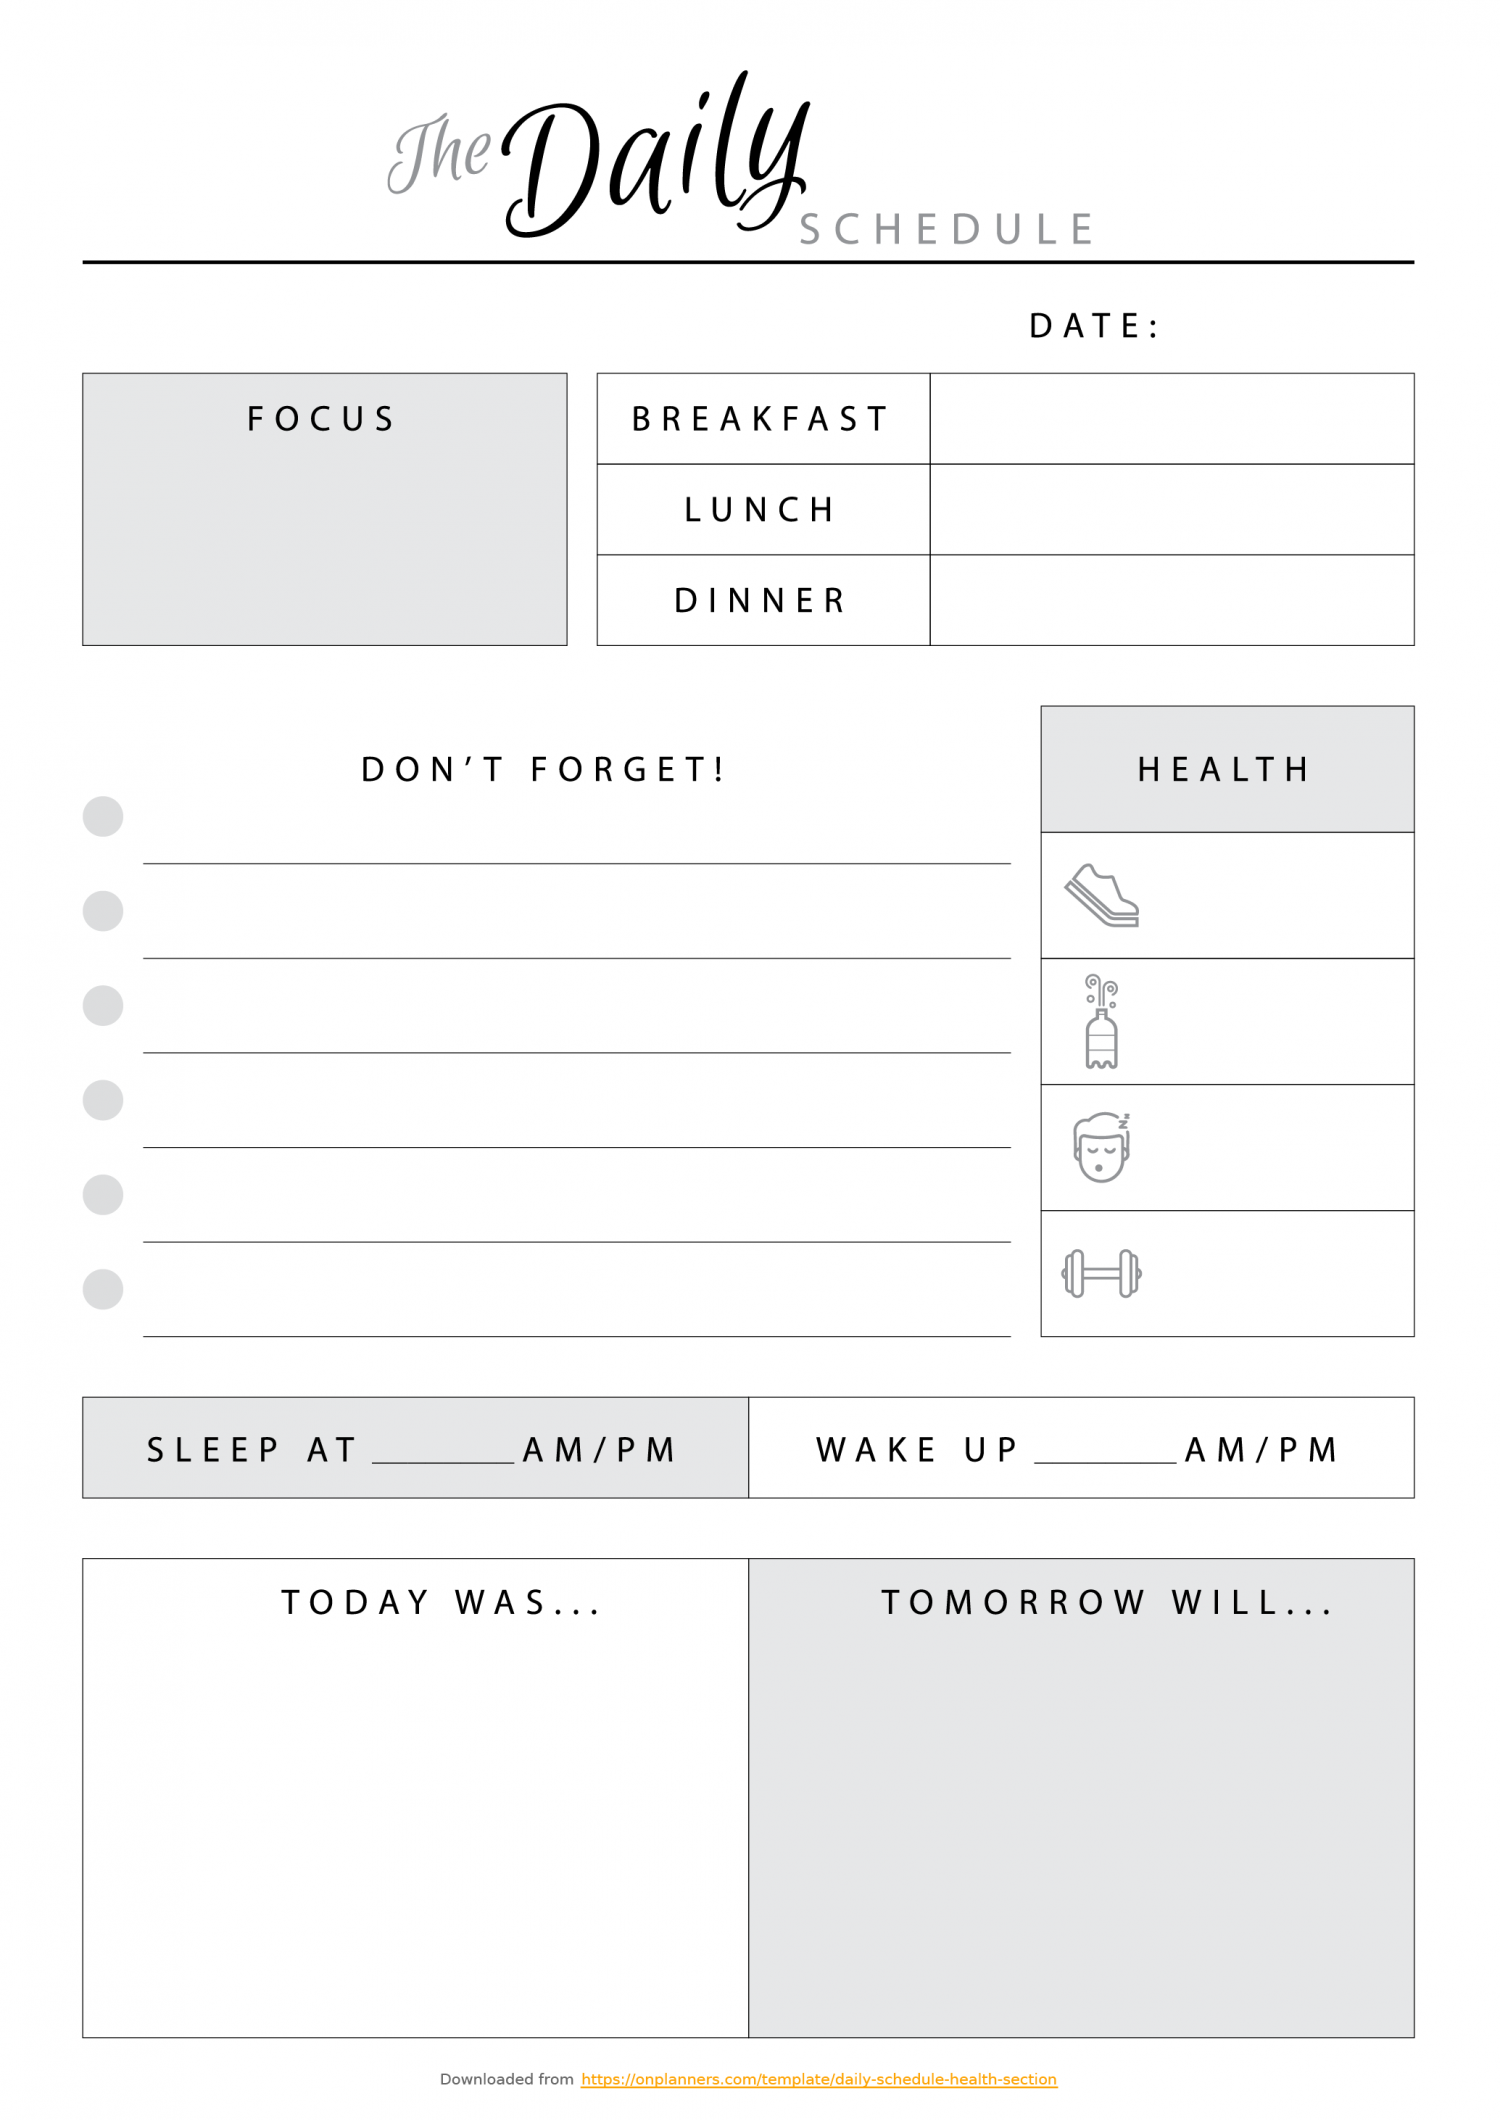 schedule template pages  Free Printable The Daily Schedule with Health section PDF ..